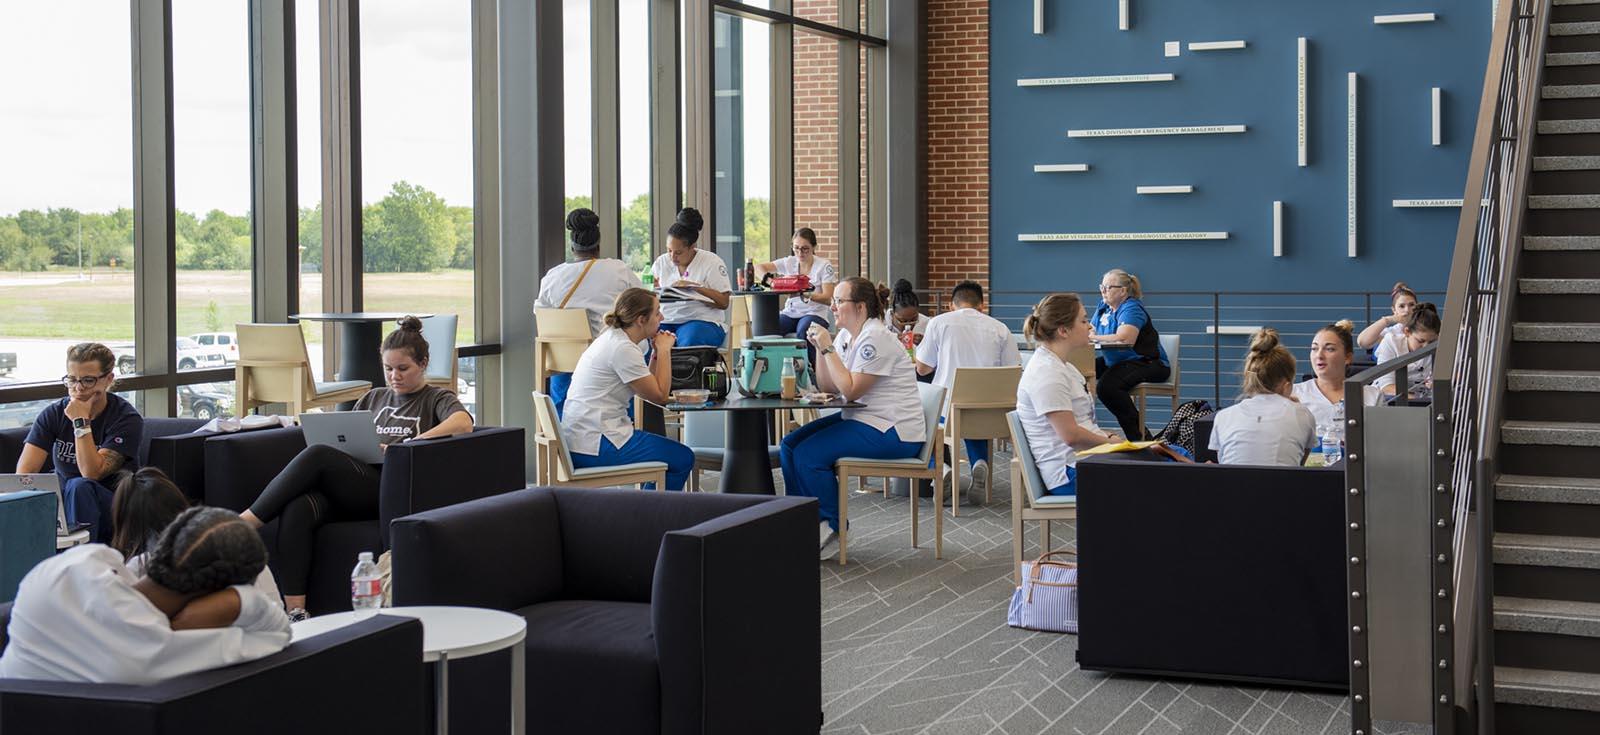 different groups of students eating, reading and talking in a student lounge at the Rellis location.